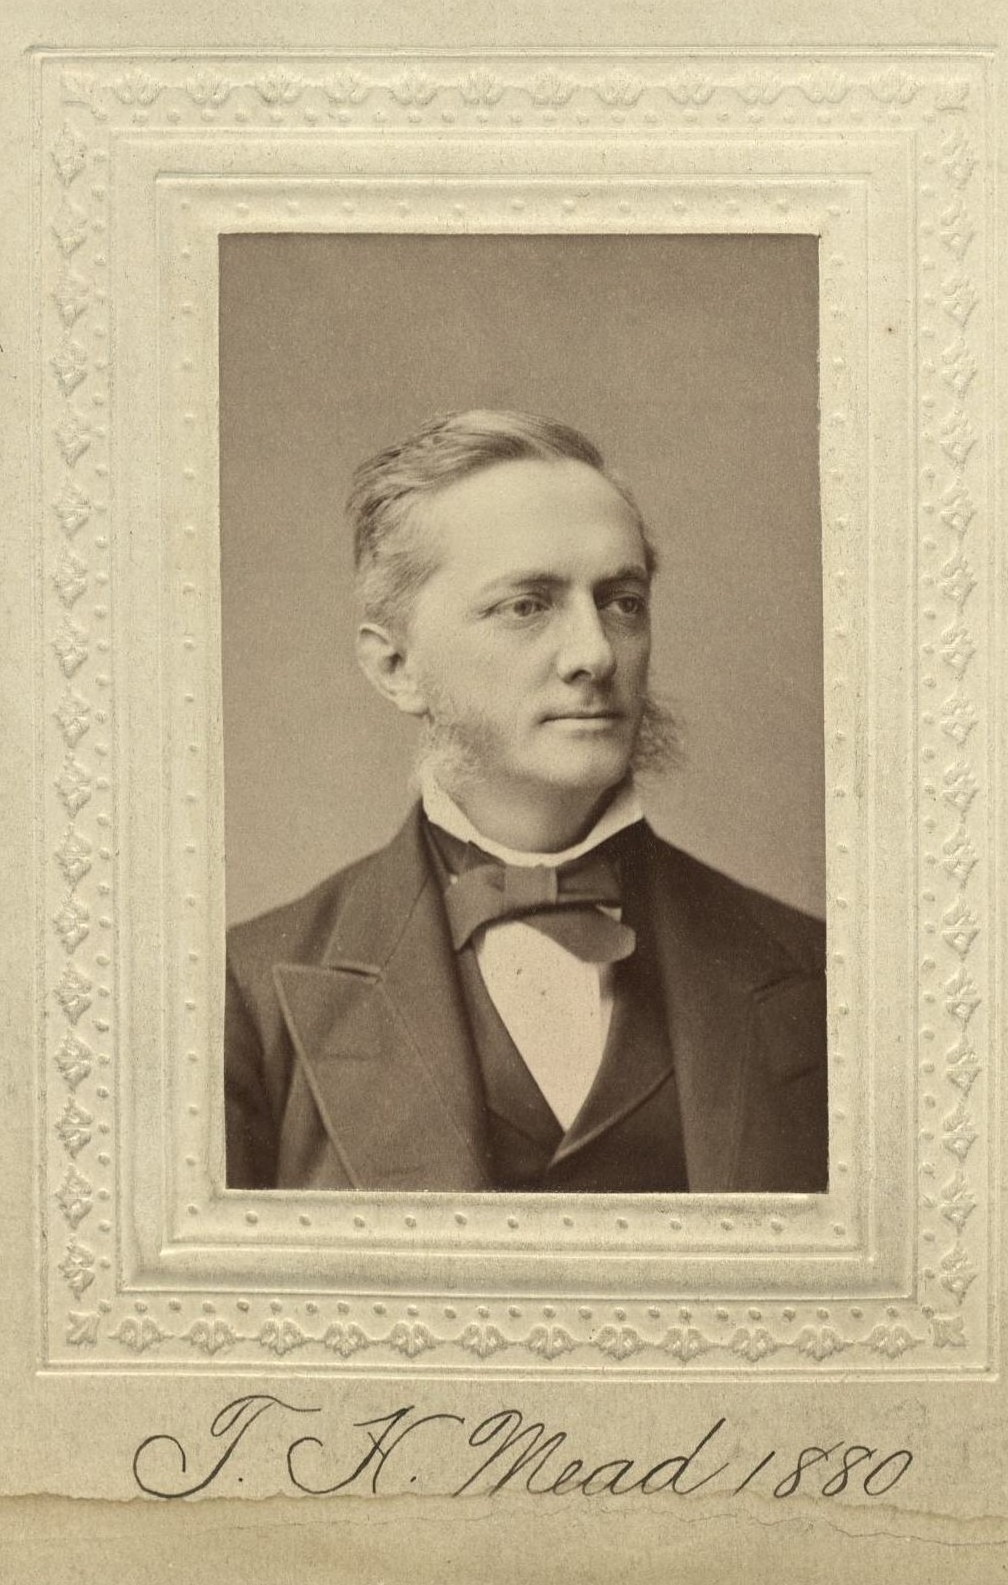 Member portrait of Theodore H. Mead